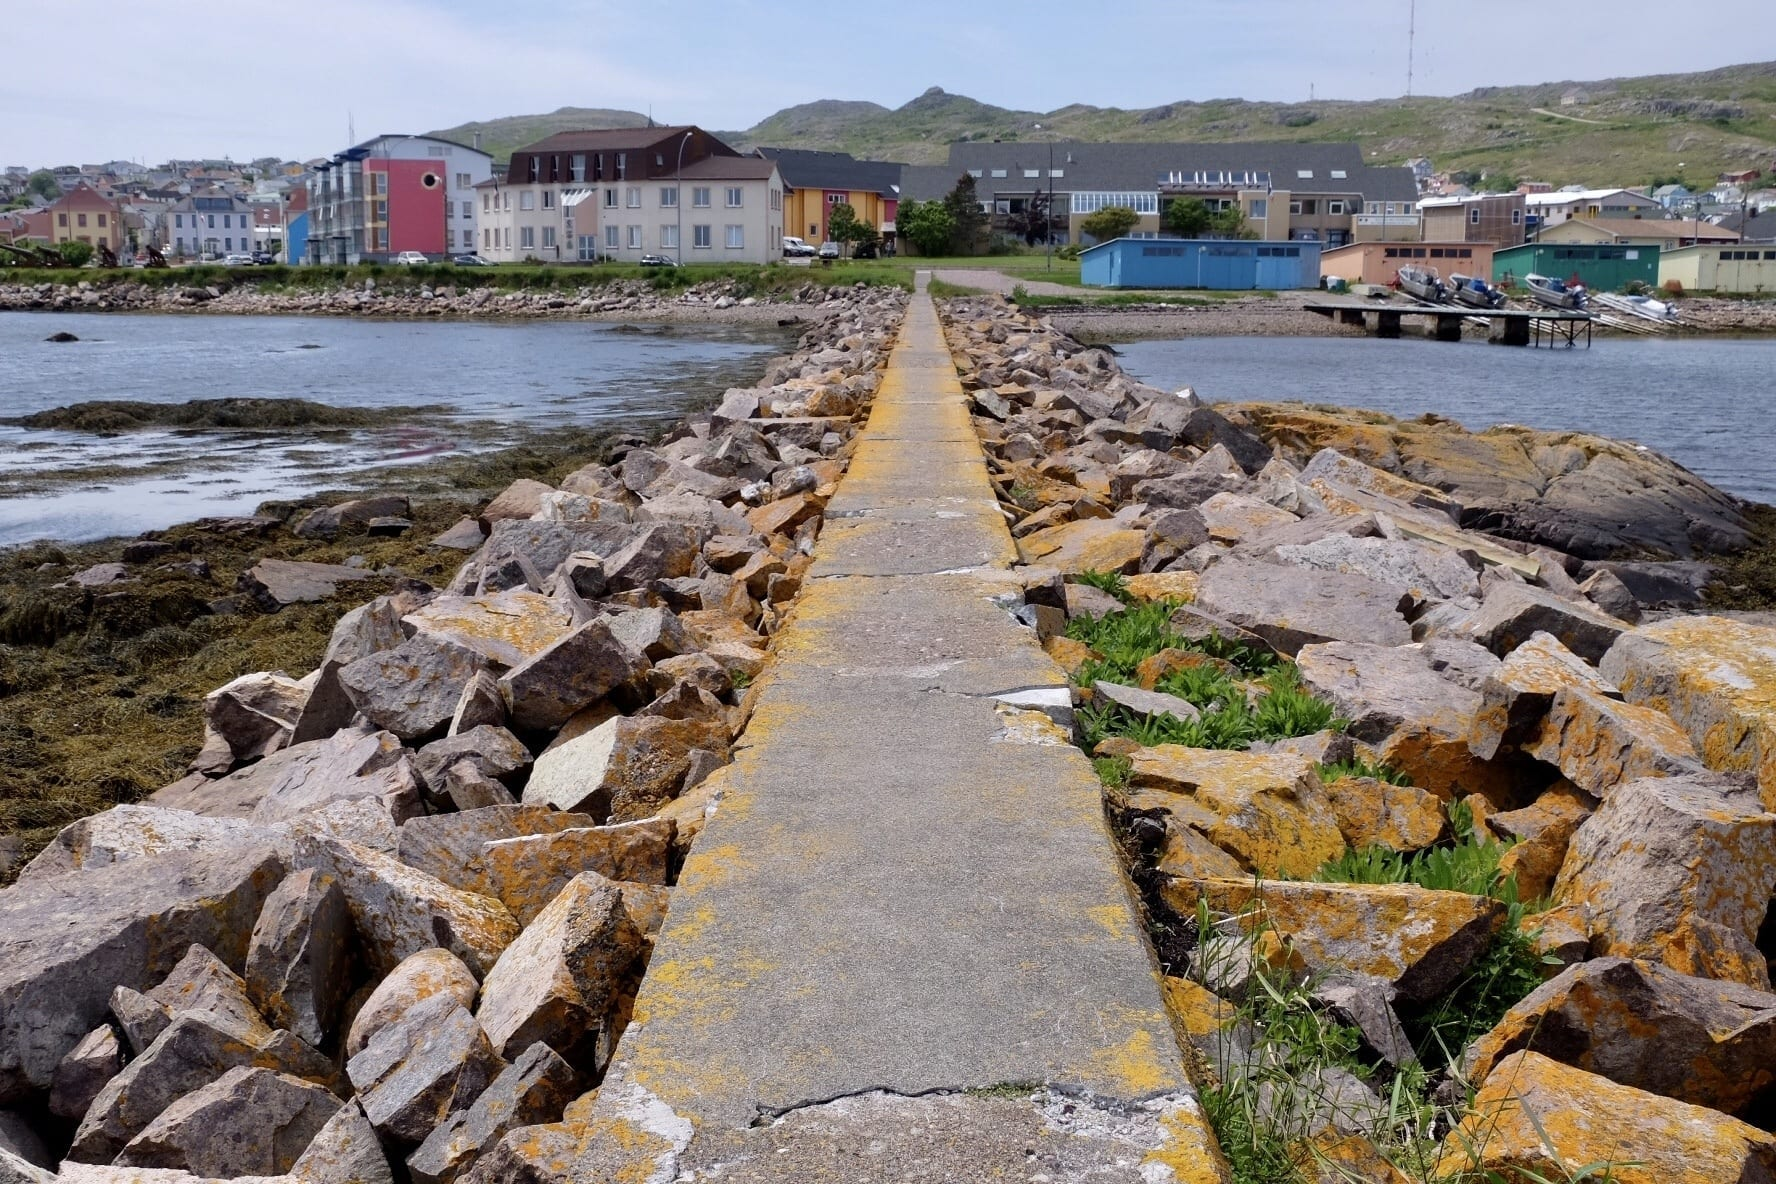 A concrete path with rocks piled on each side leads to the colorful houses of St. Pierre and Miquelon.